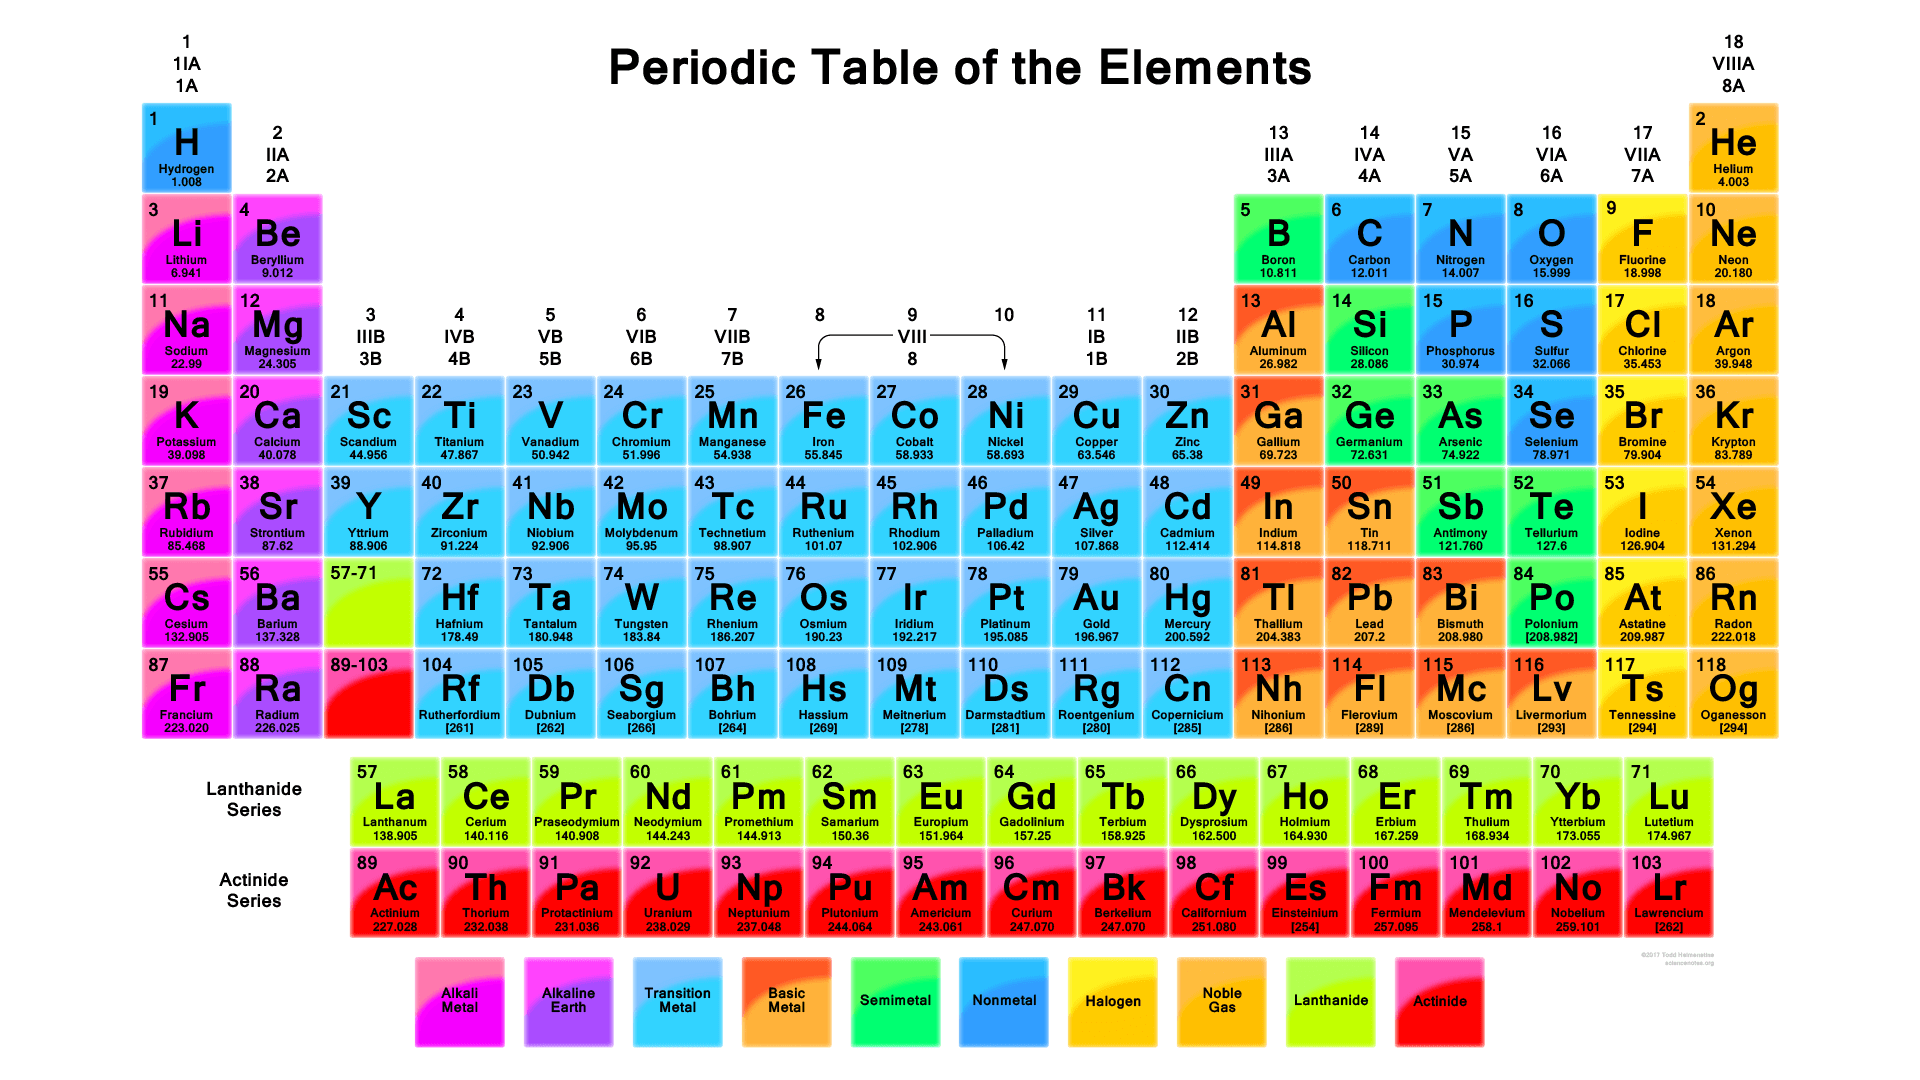 2019 Periodic Table With 118 Elements